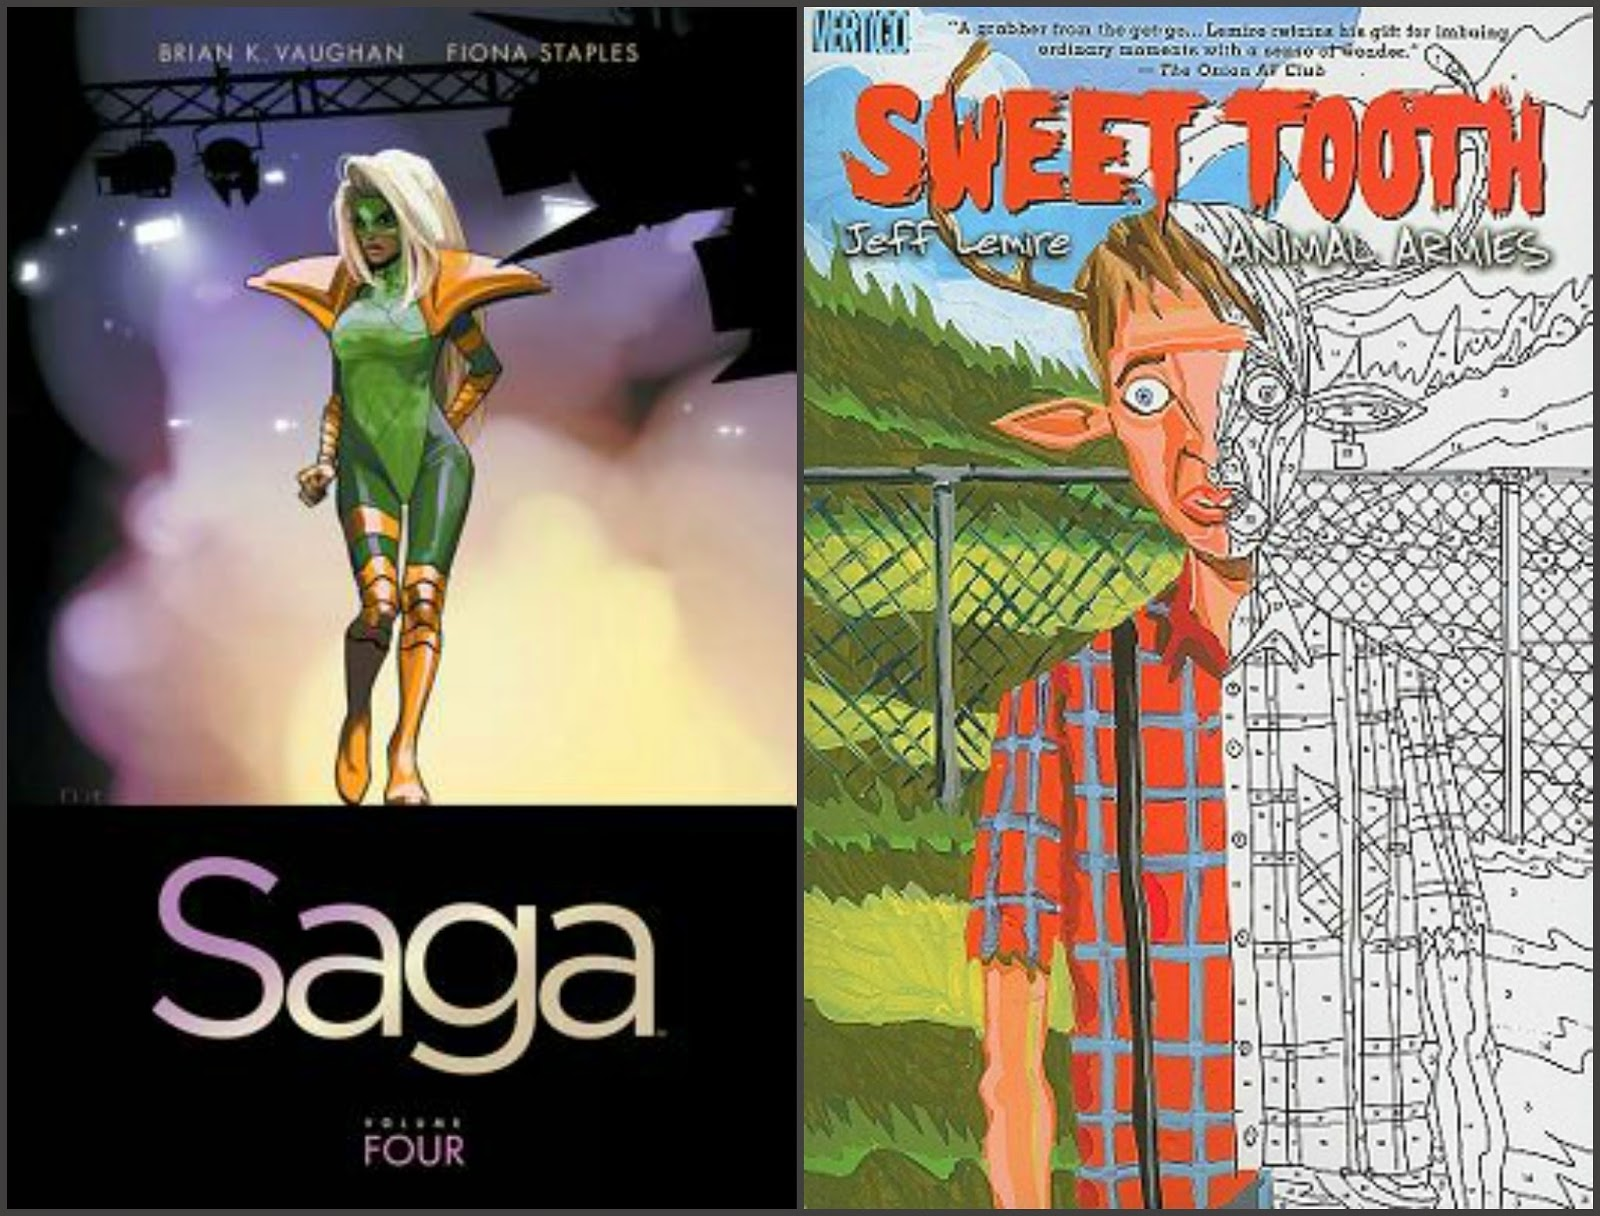 Saga by Brian K. Vaughan; Sweet Tooth by Jeff Lemire